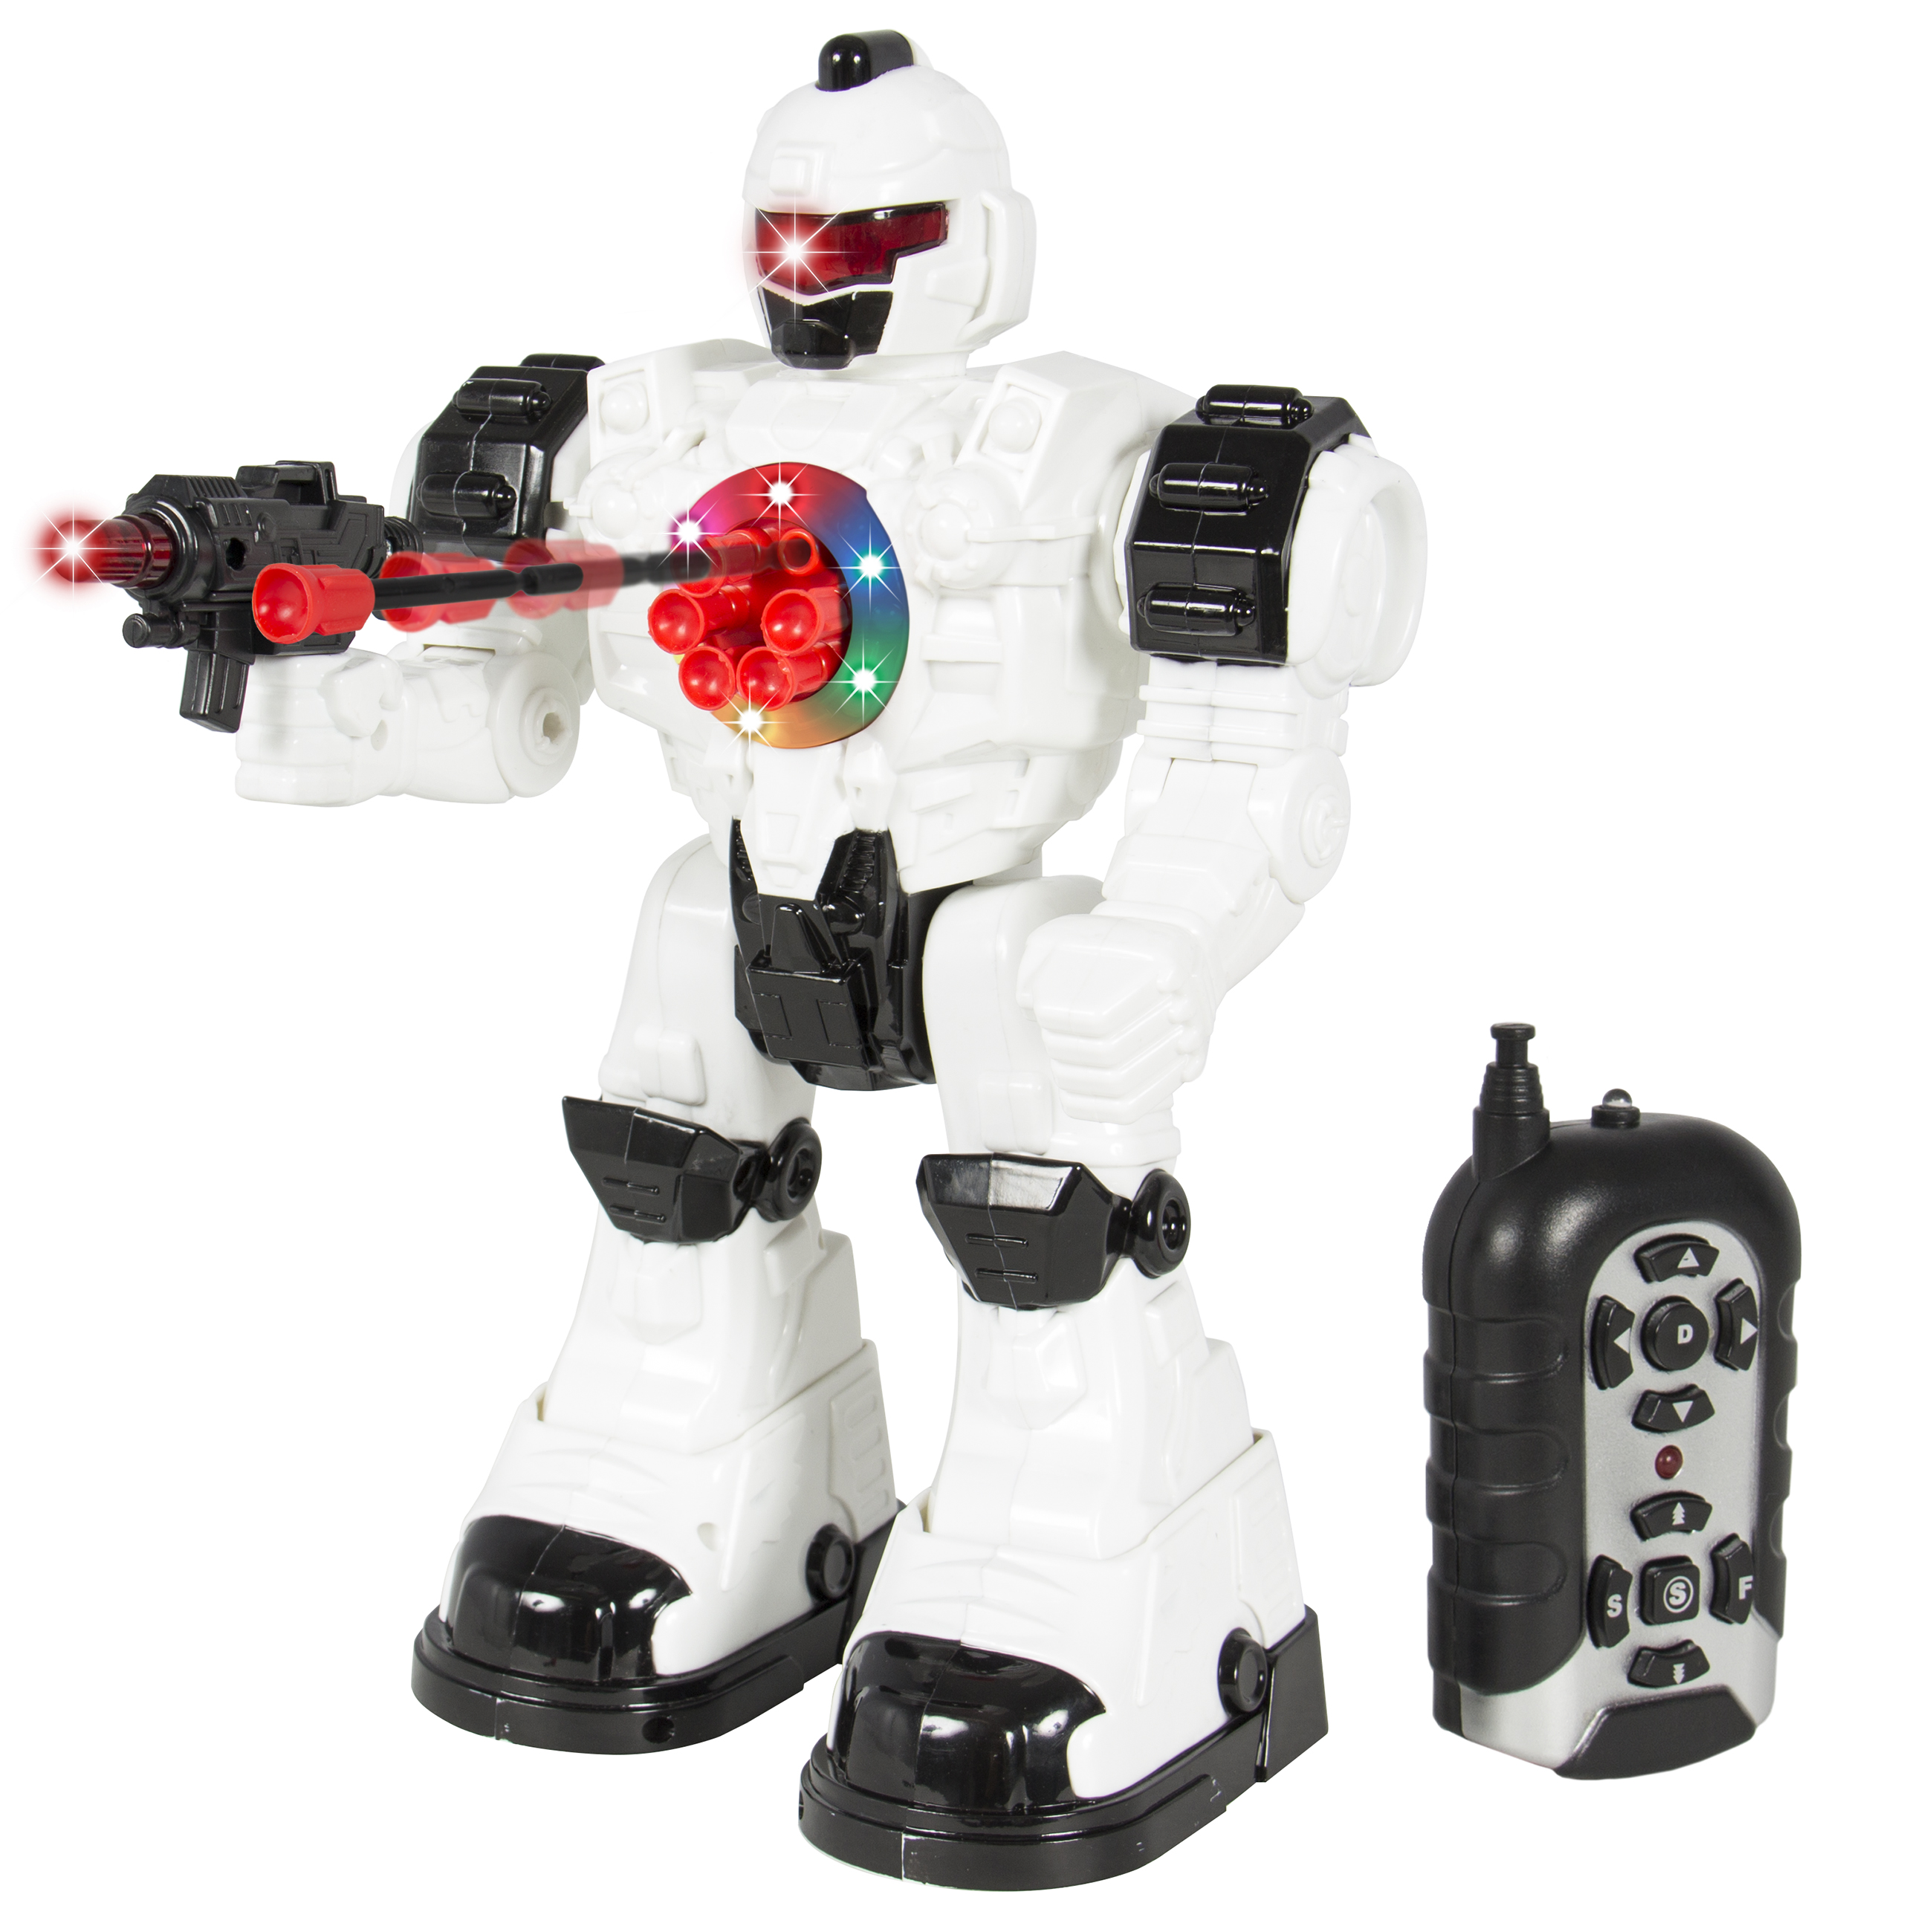 Walking Remote Control RC Shooting Robot Police Toy Lights and Sound Effects